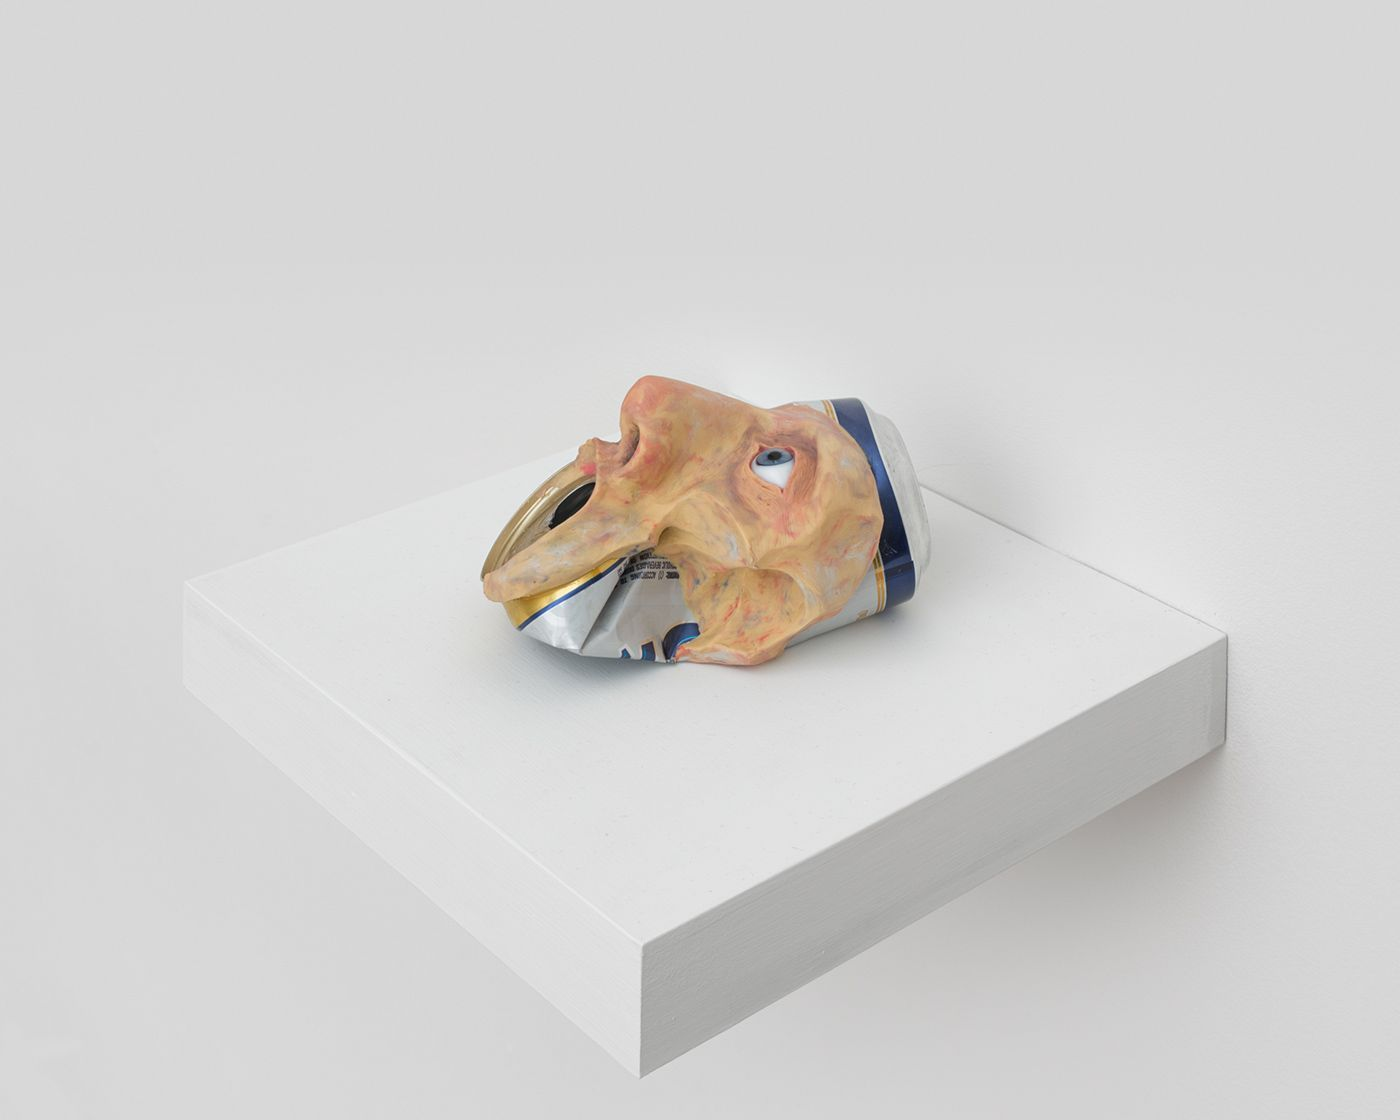 CB9892_MSC_John Brown, Untitled (Colt 45)_Aluminum can, plasticine, glass eye_ 3 x 6 x 3 12 in